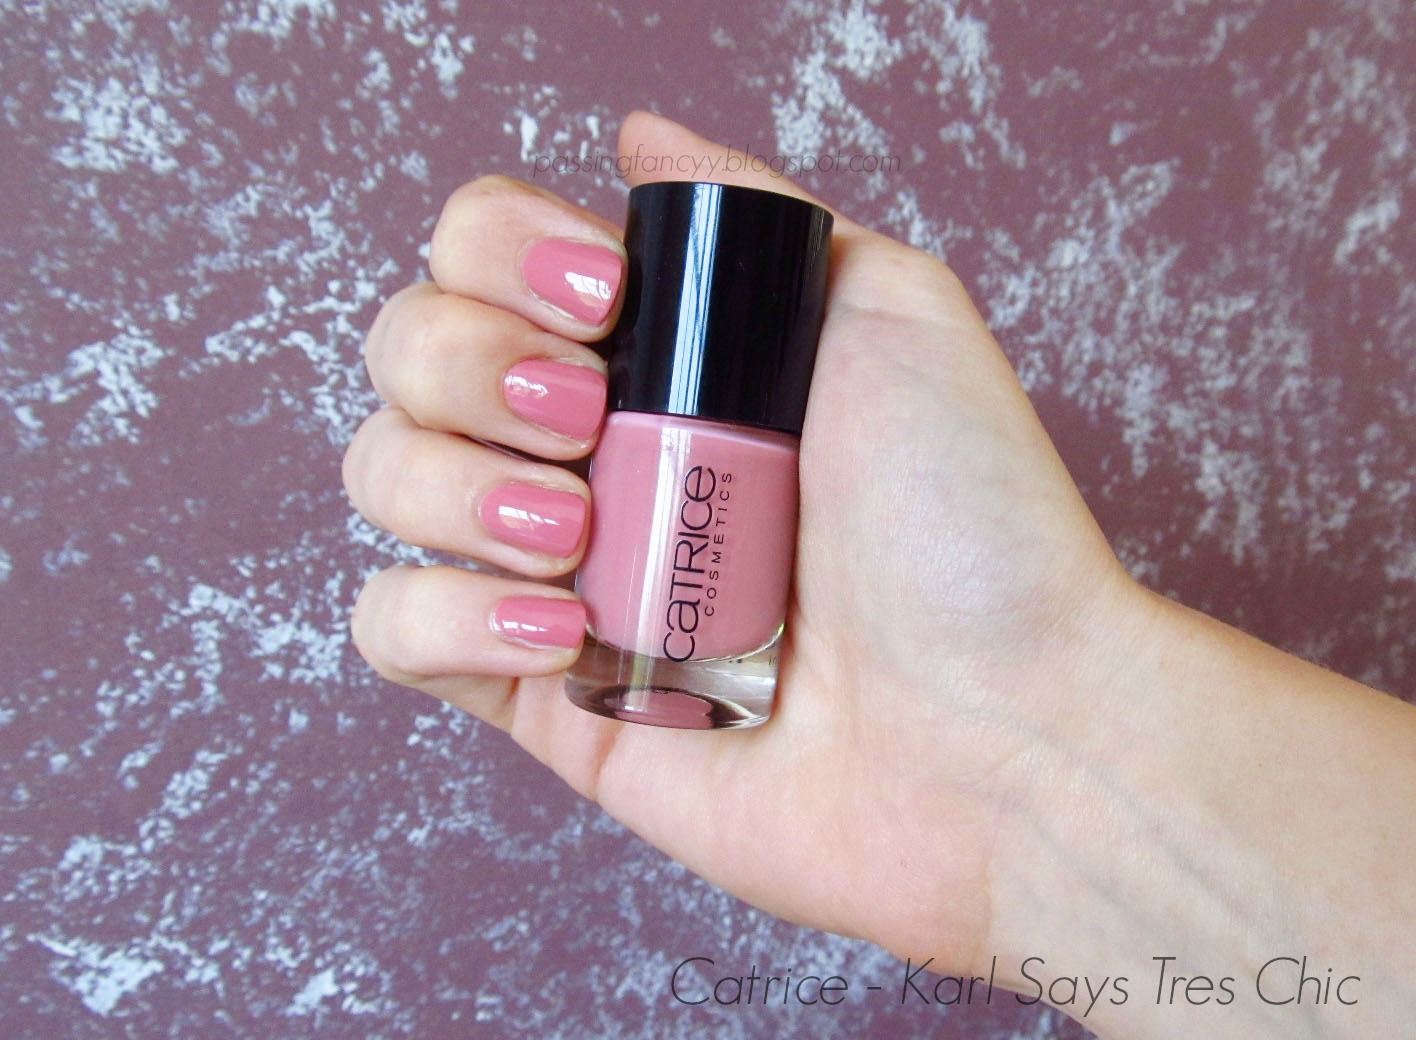 Passing Fancy Perfect Rosy Nails Catrice Karl Says Tres Chic